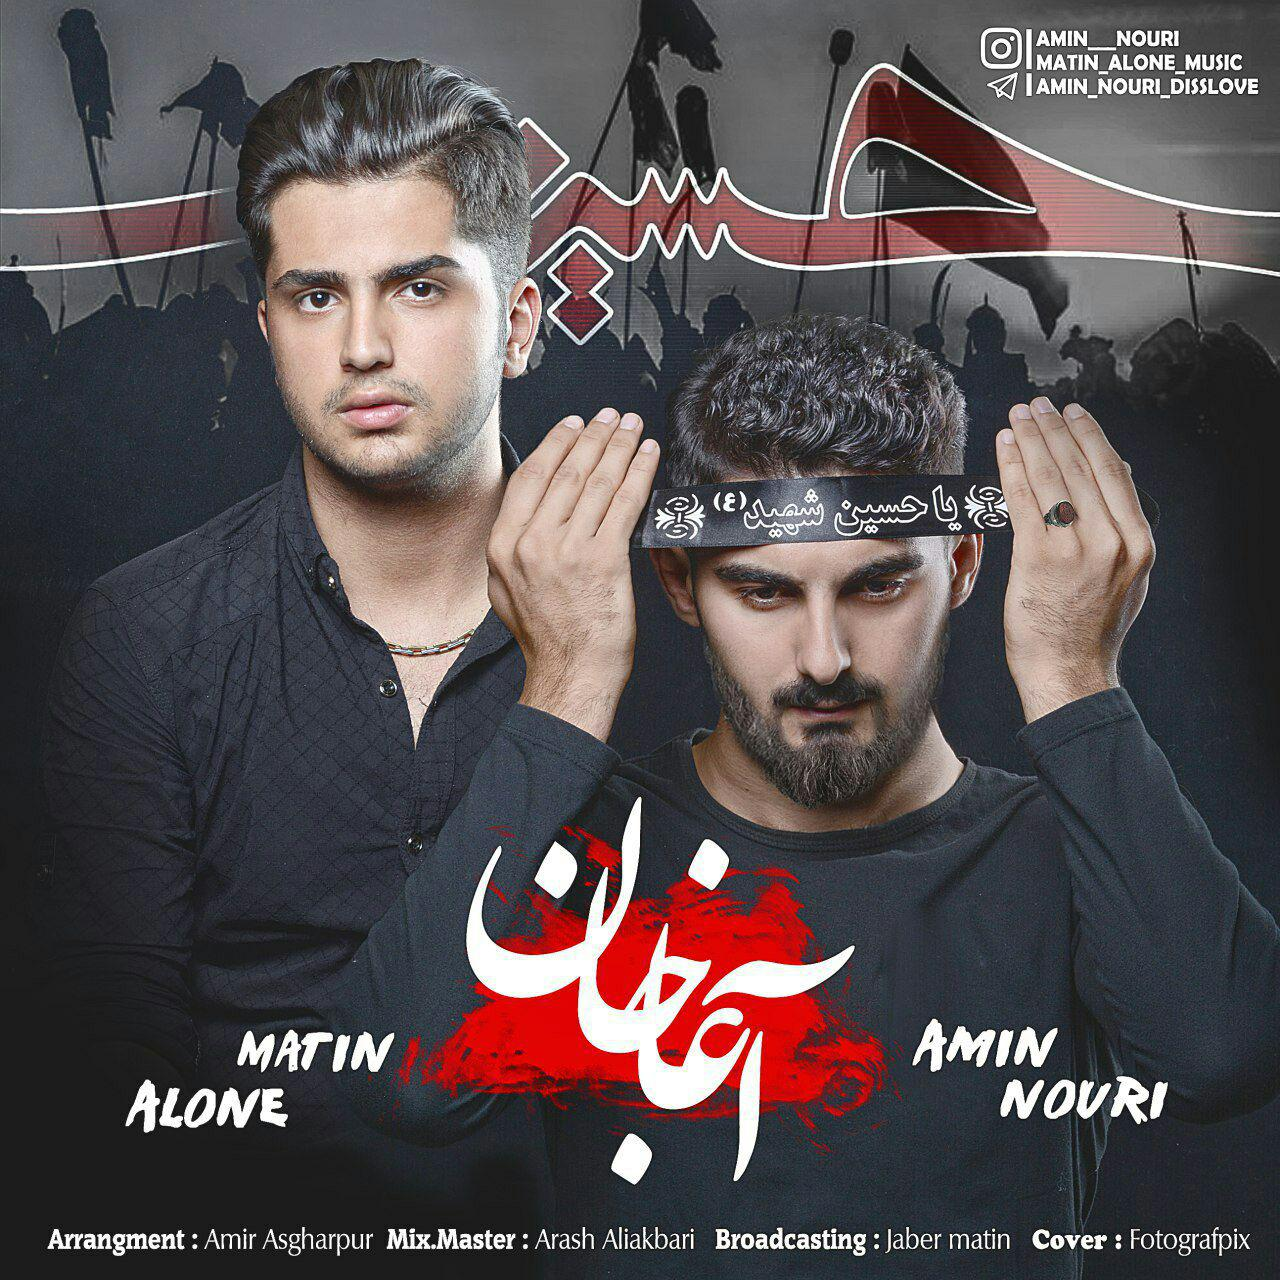 http://s9.picofile.com/file/8337861950/10Matin_Alone_Ft_Amin_Nouri_Agha_Jan.jpg